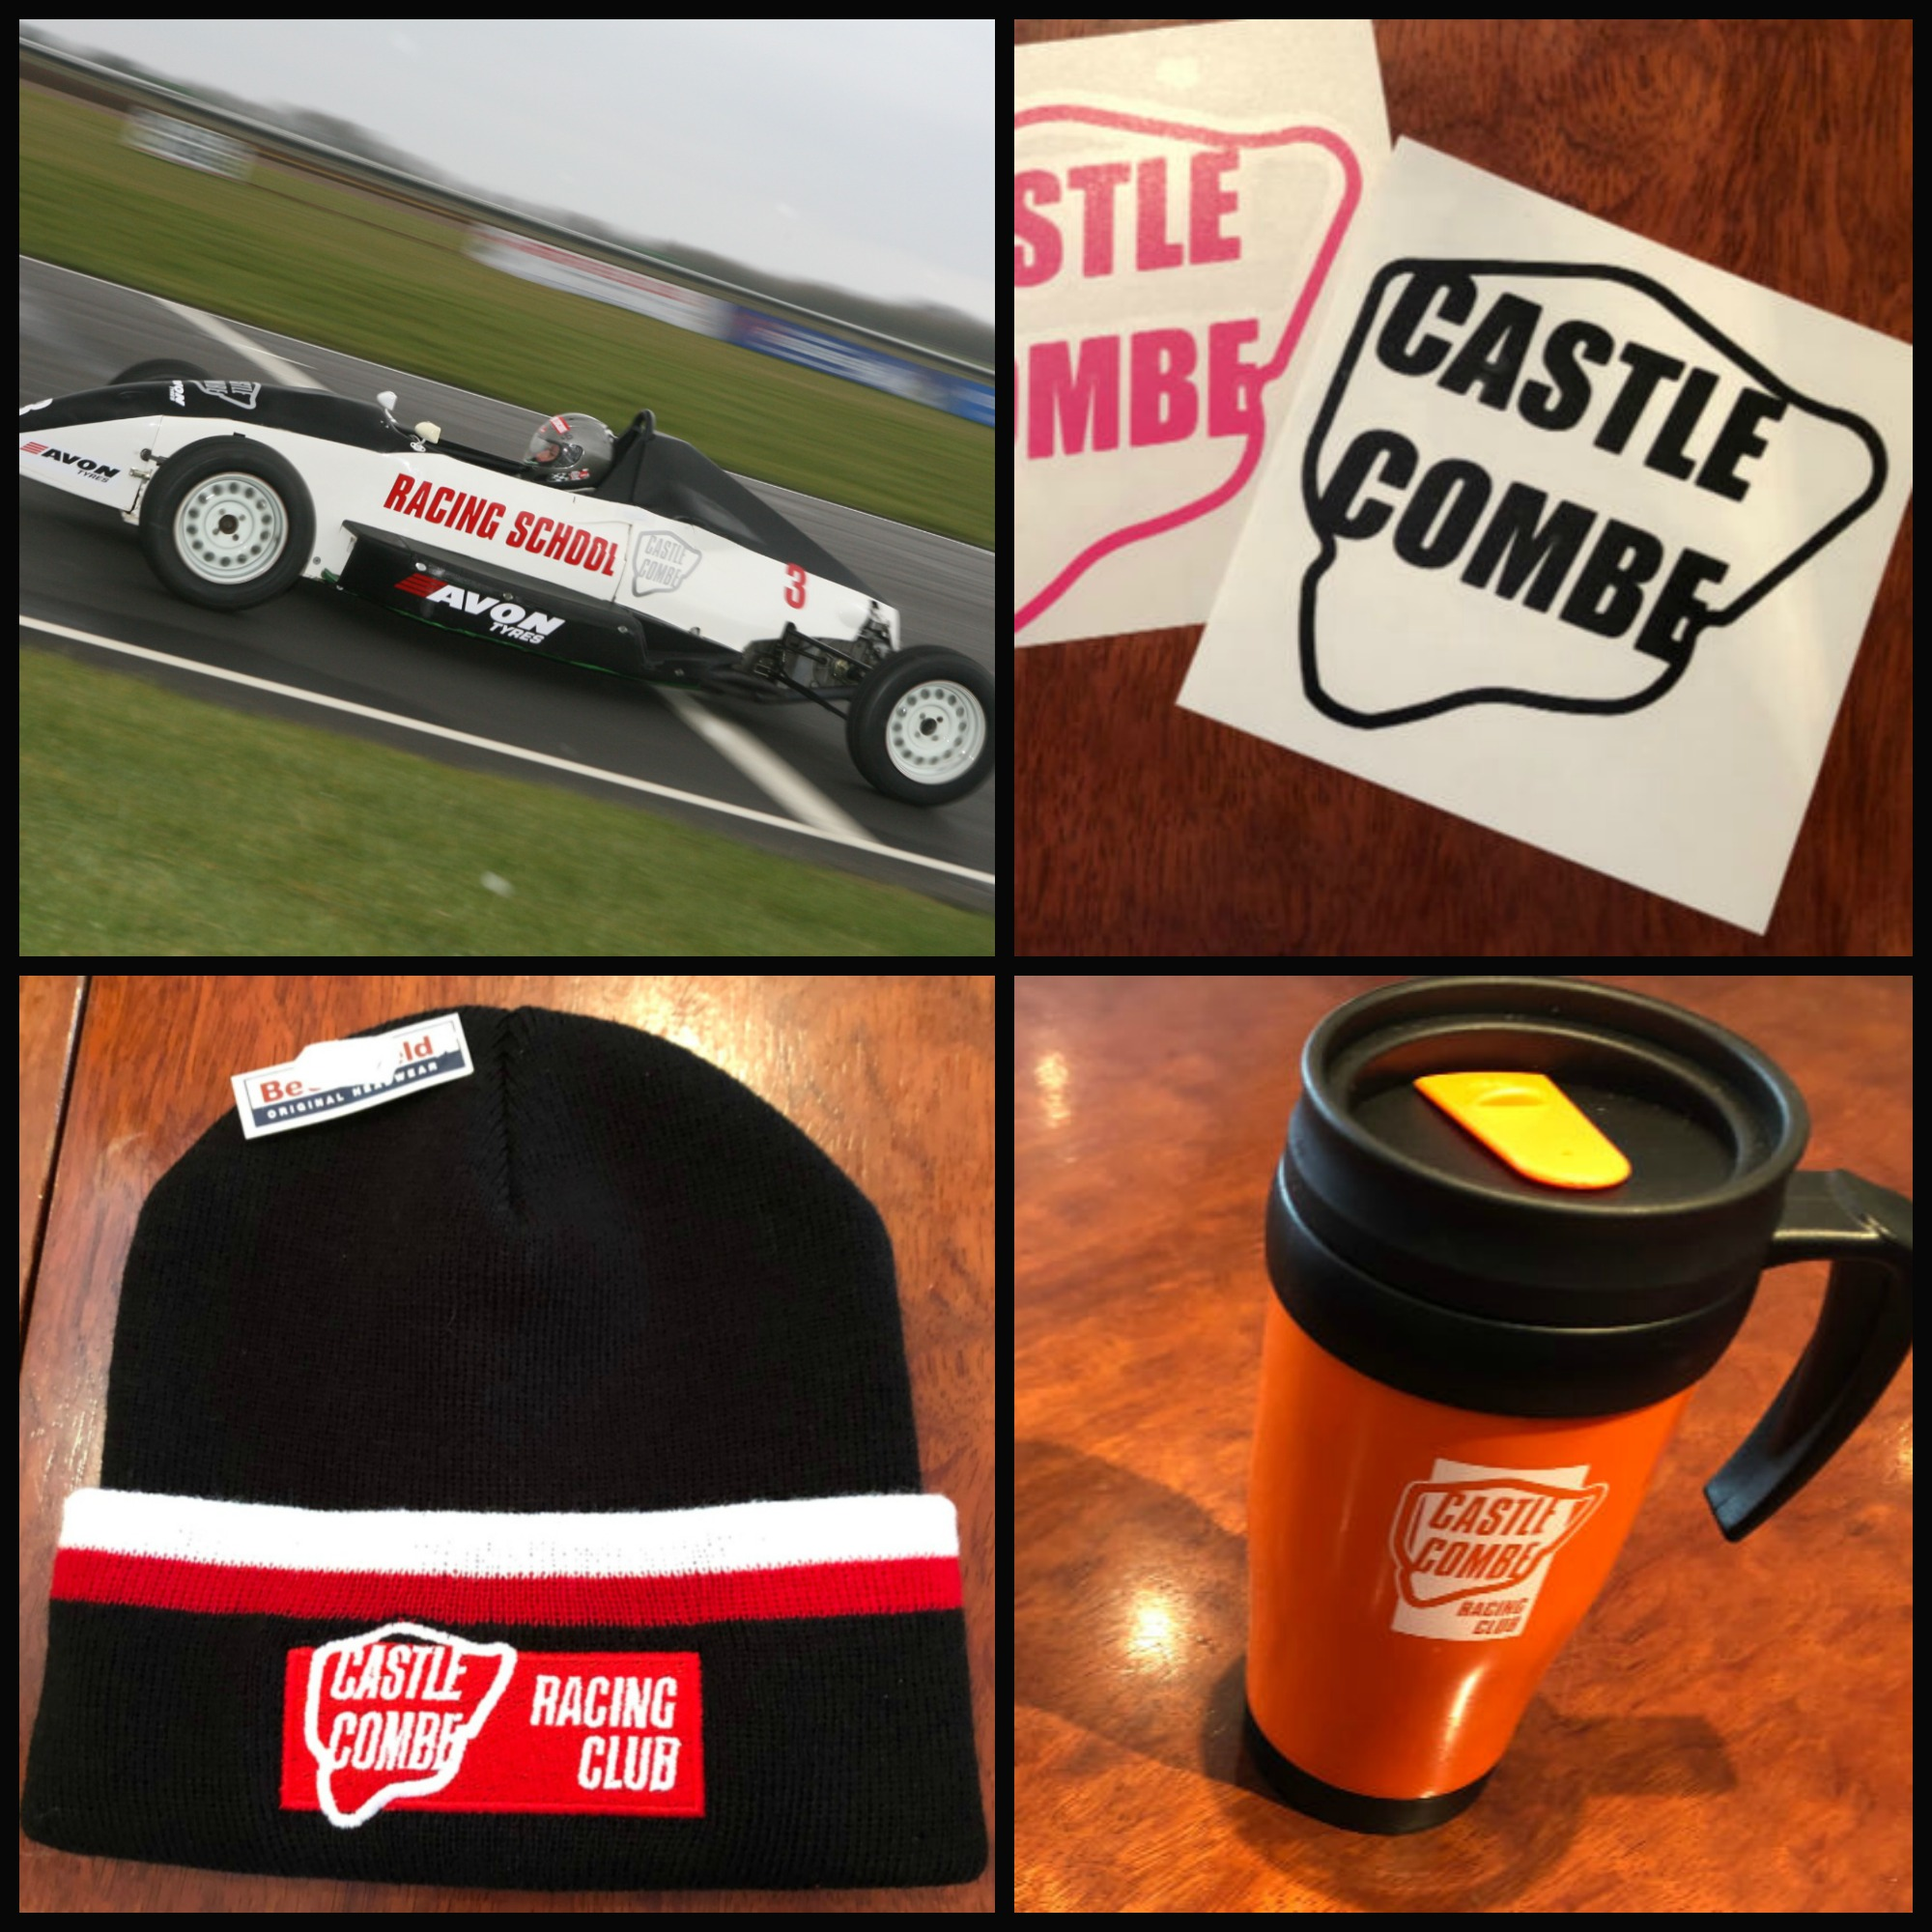 CASTLE COMBE CIRCUIT WEB SHOP LAUNCHES NEW LINE OF GIFTS